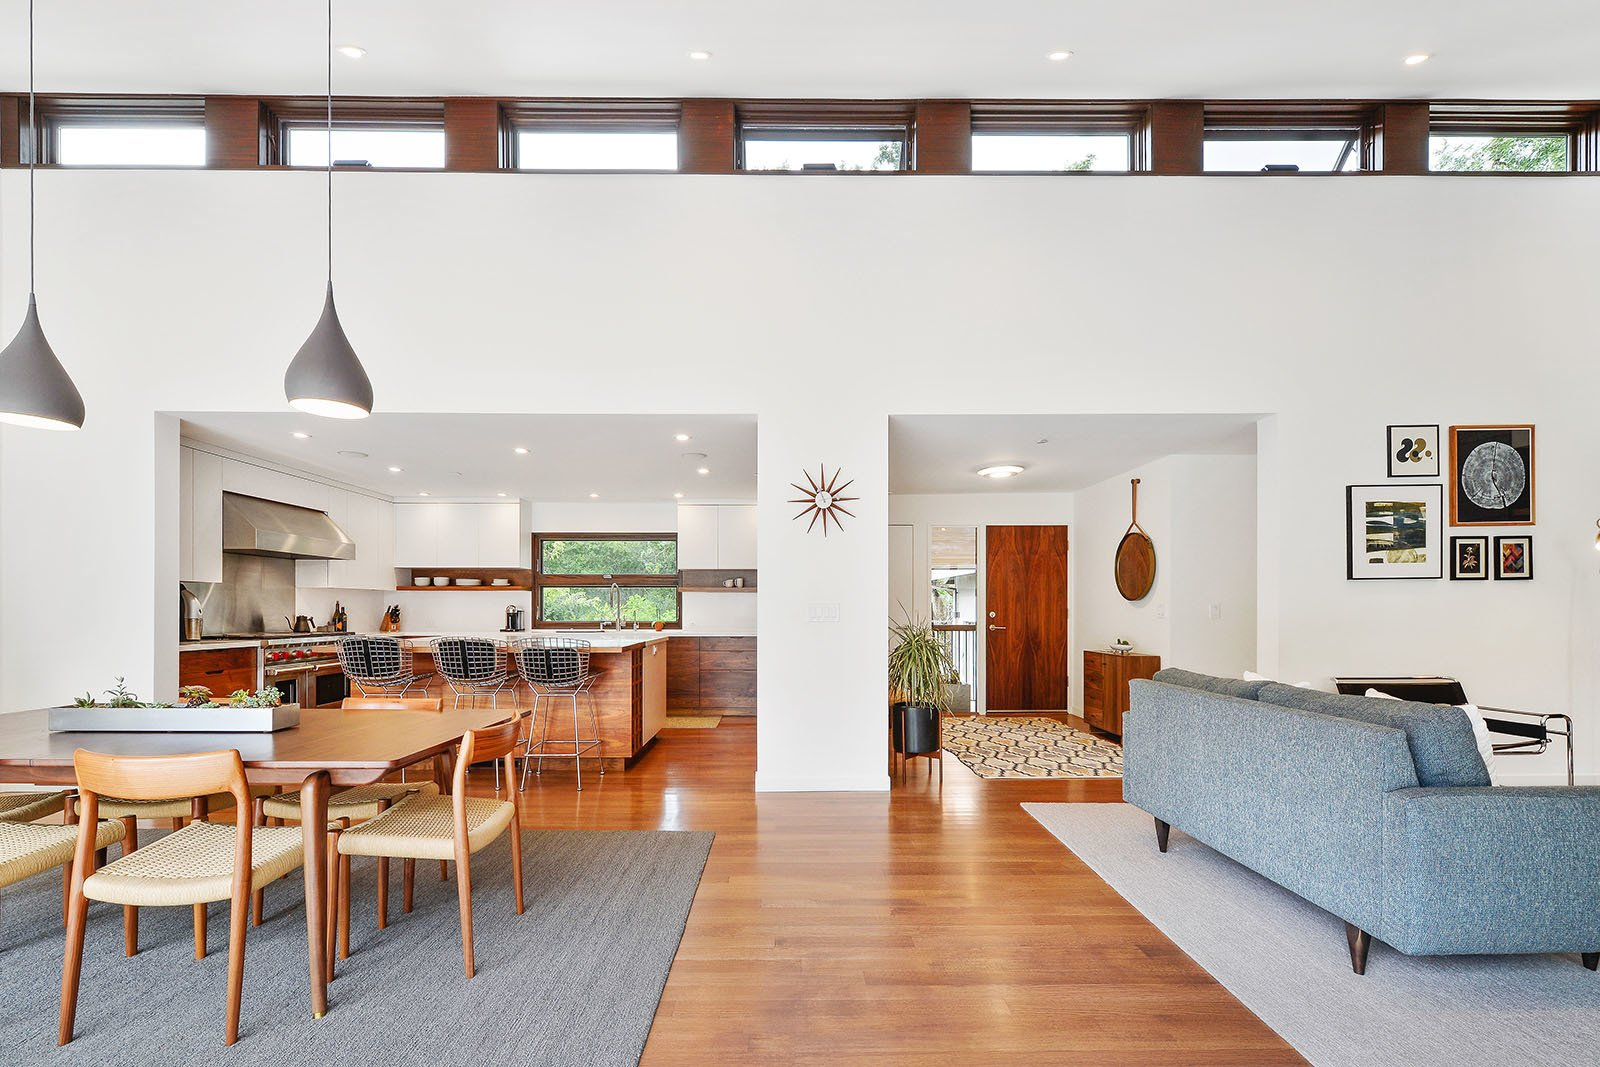 Living room Tagged: Dining Room, Chair, Stools, Table, Lamps, Ceiling Lighting, Pendant Lighting, and Medium Hardwood Floor.  Portola Valley by patrick perez/designpad architecture